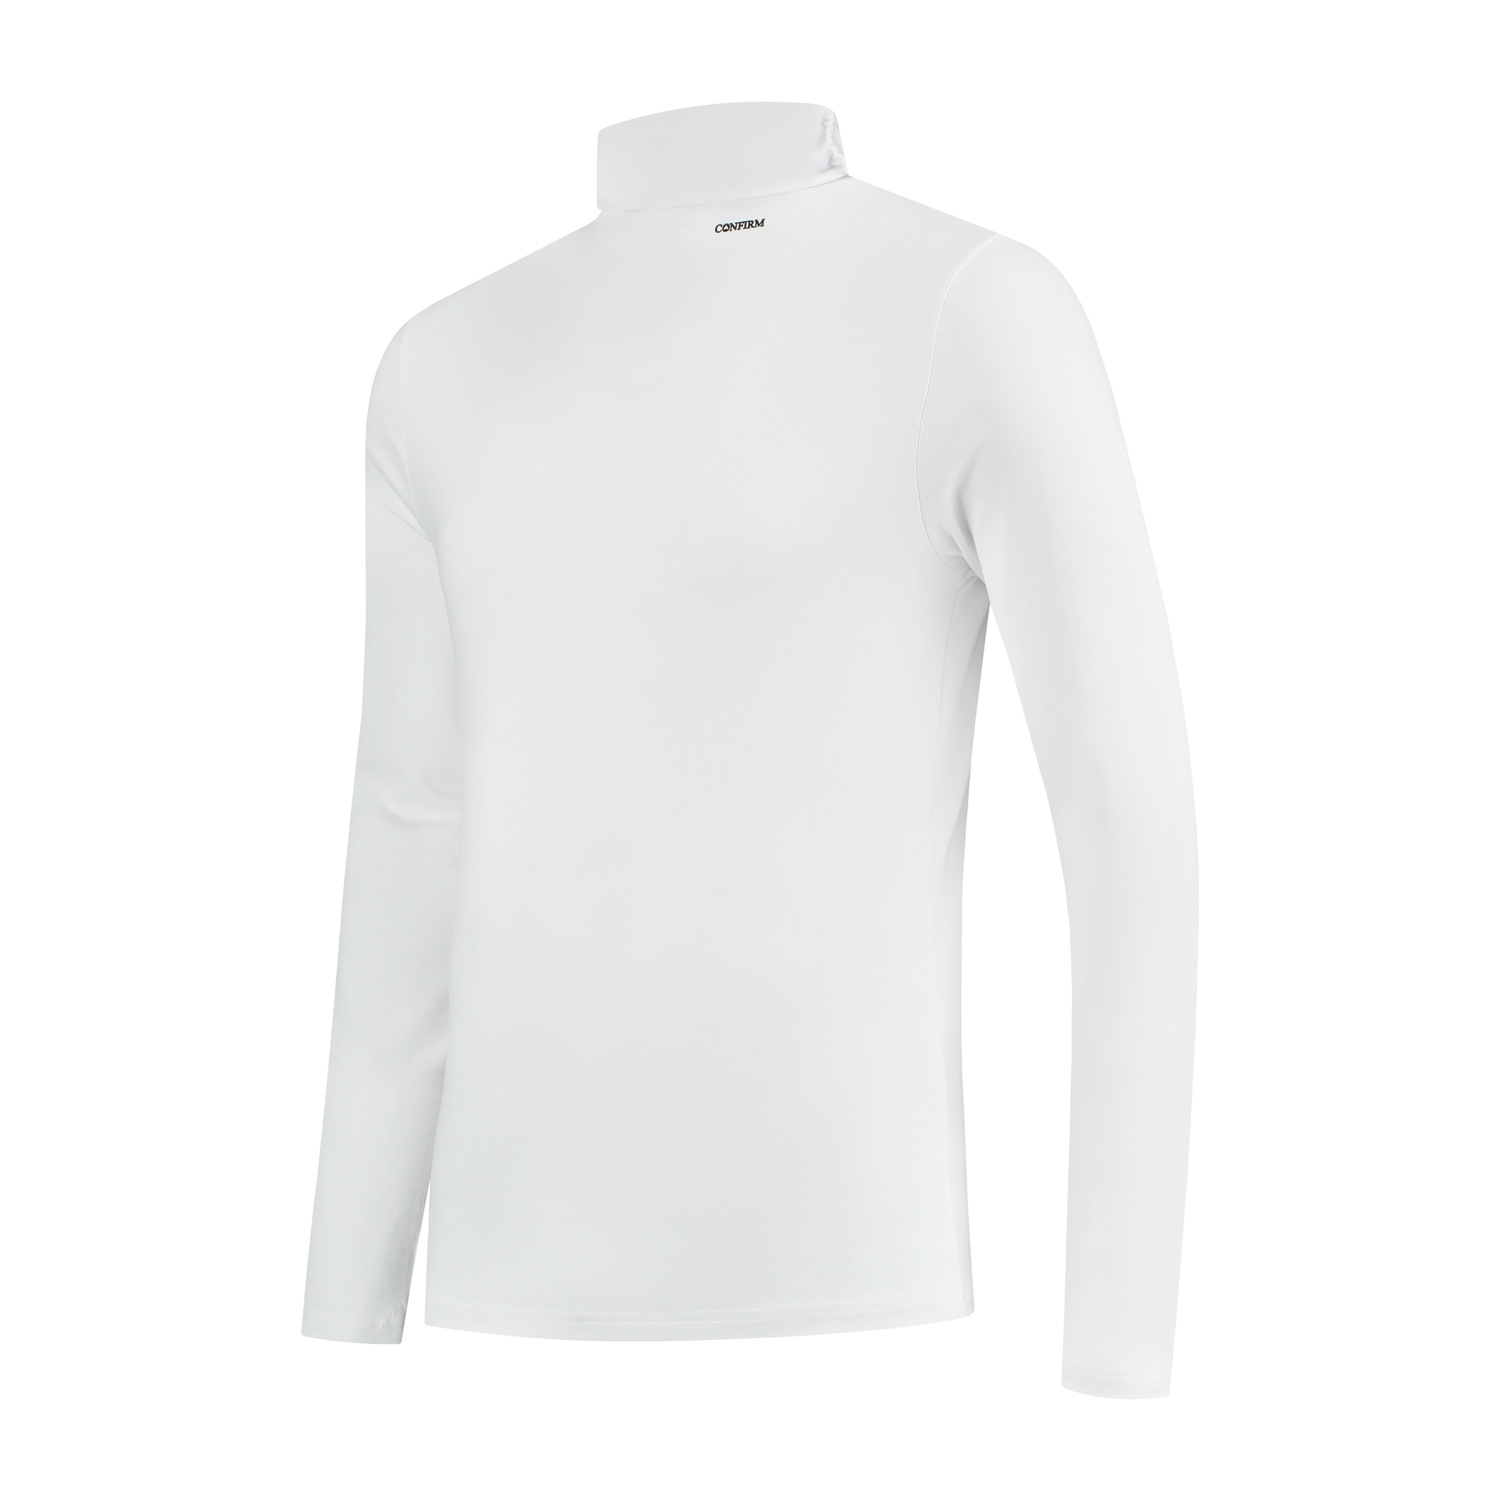 Confirm | Basic Turtleneck Confirm - Wit-2